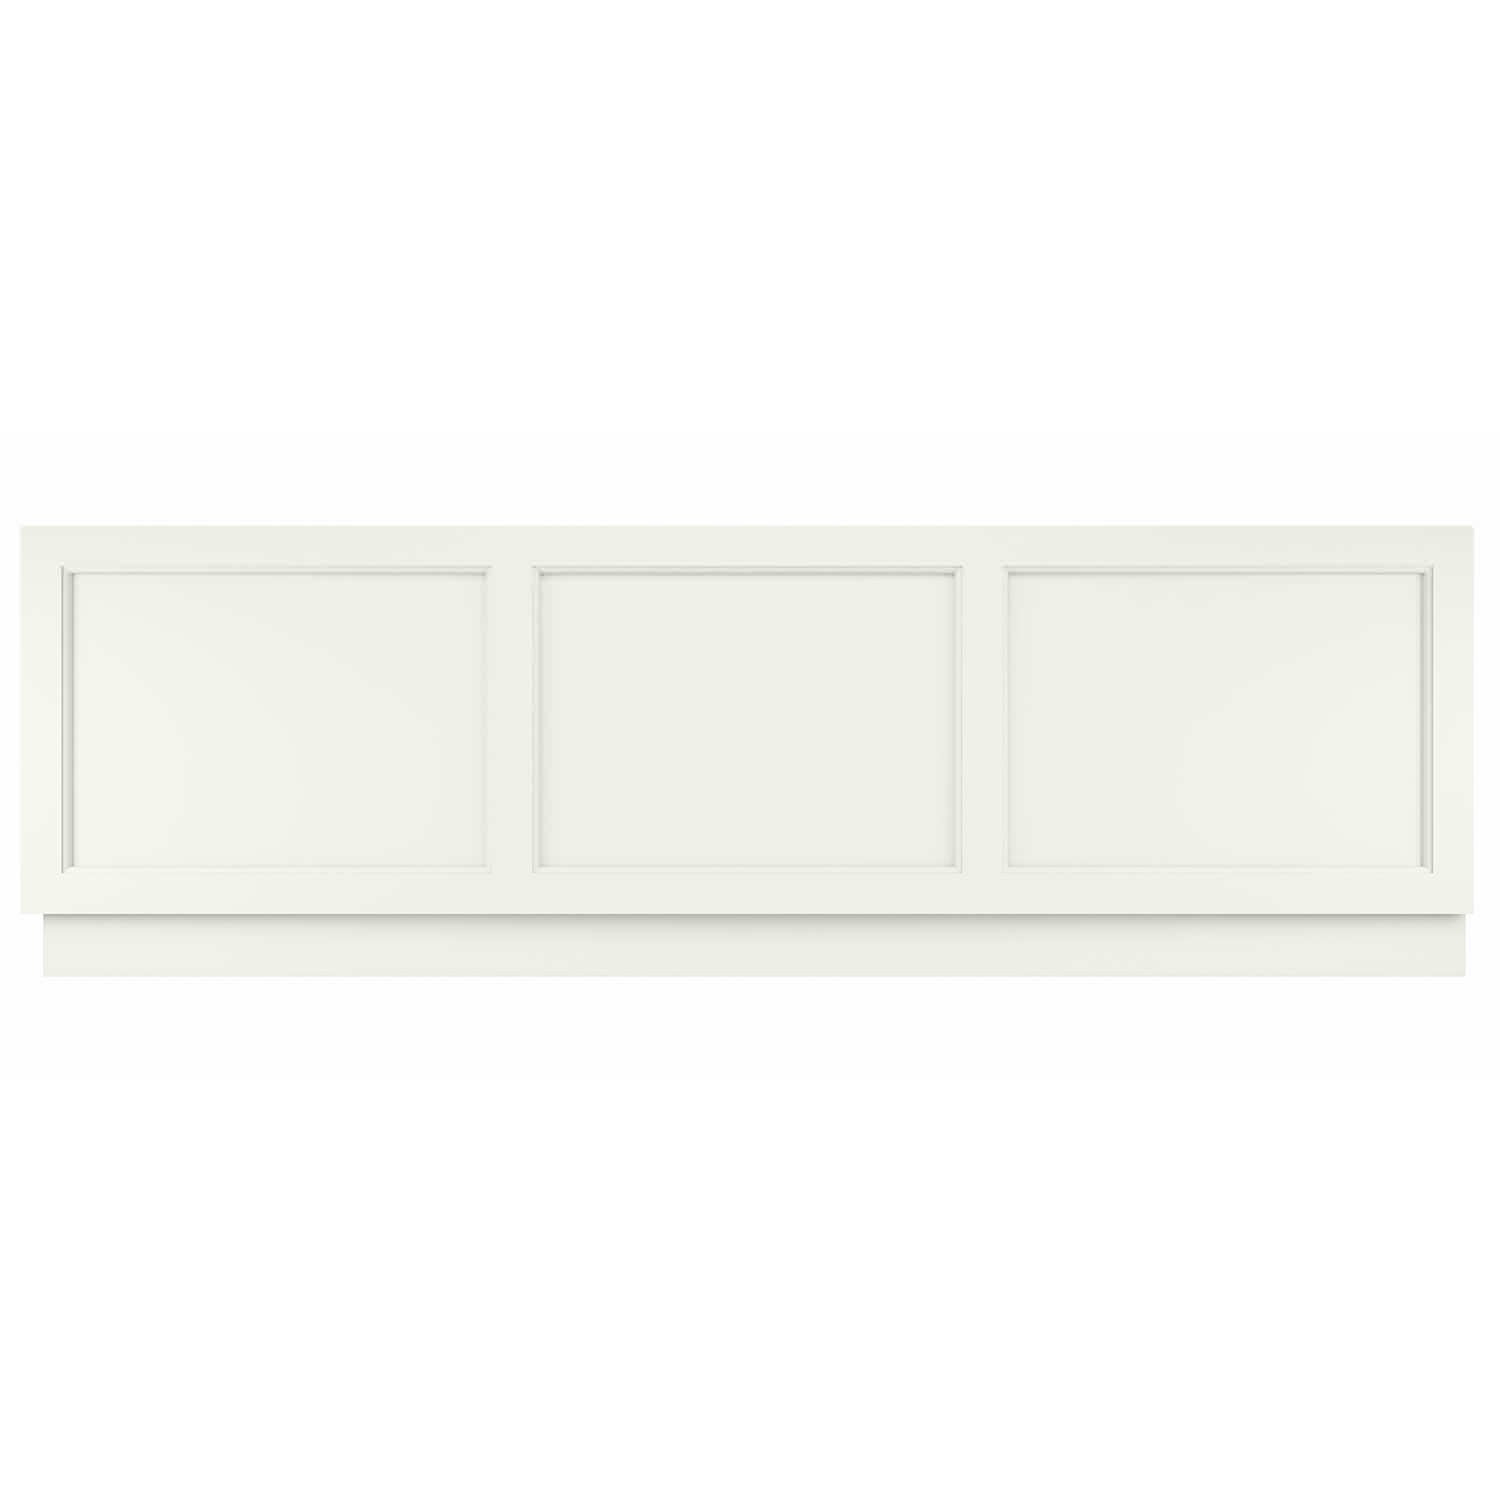 Bayswater X 560mm Bath Front Panel Bayf137